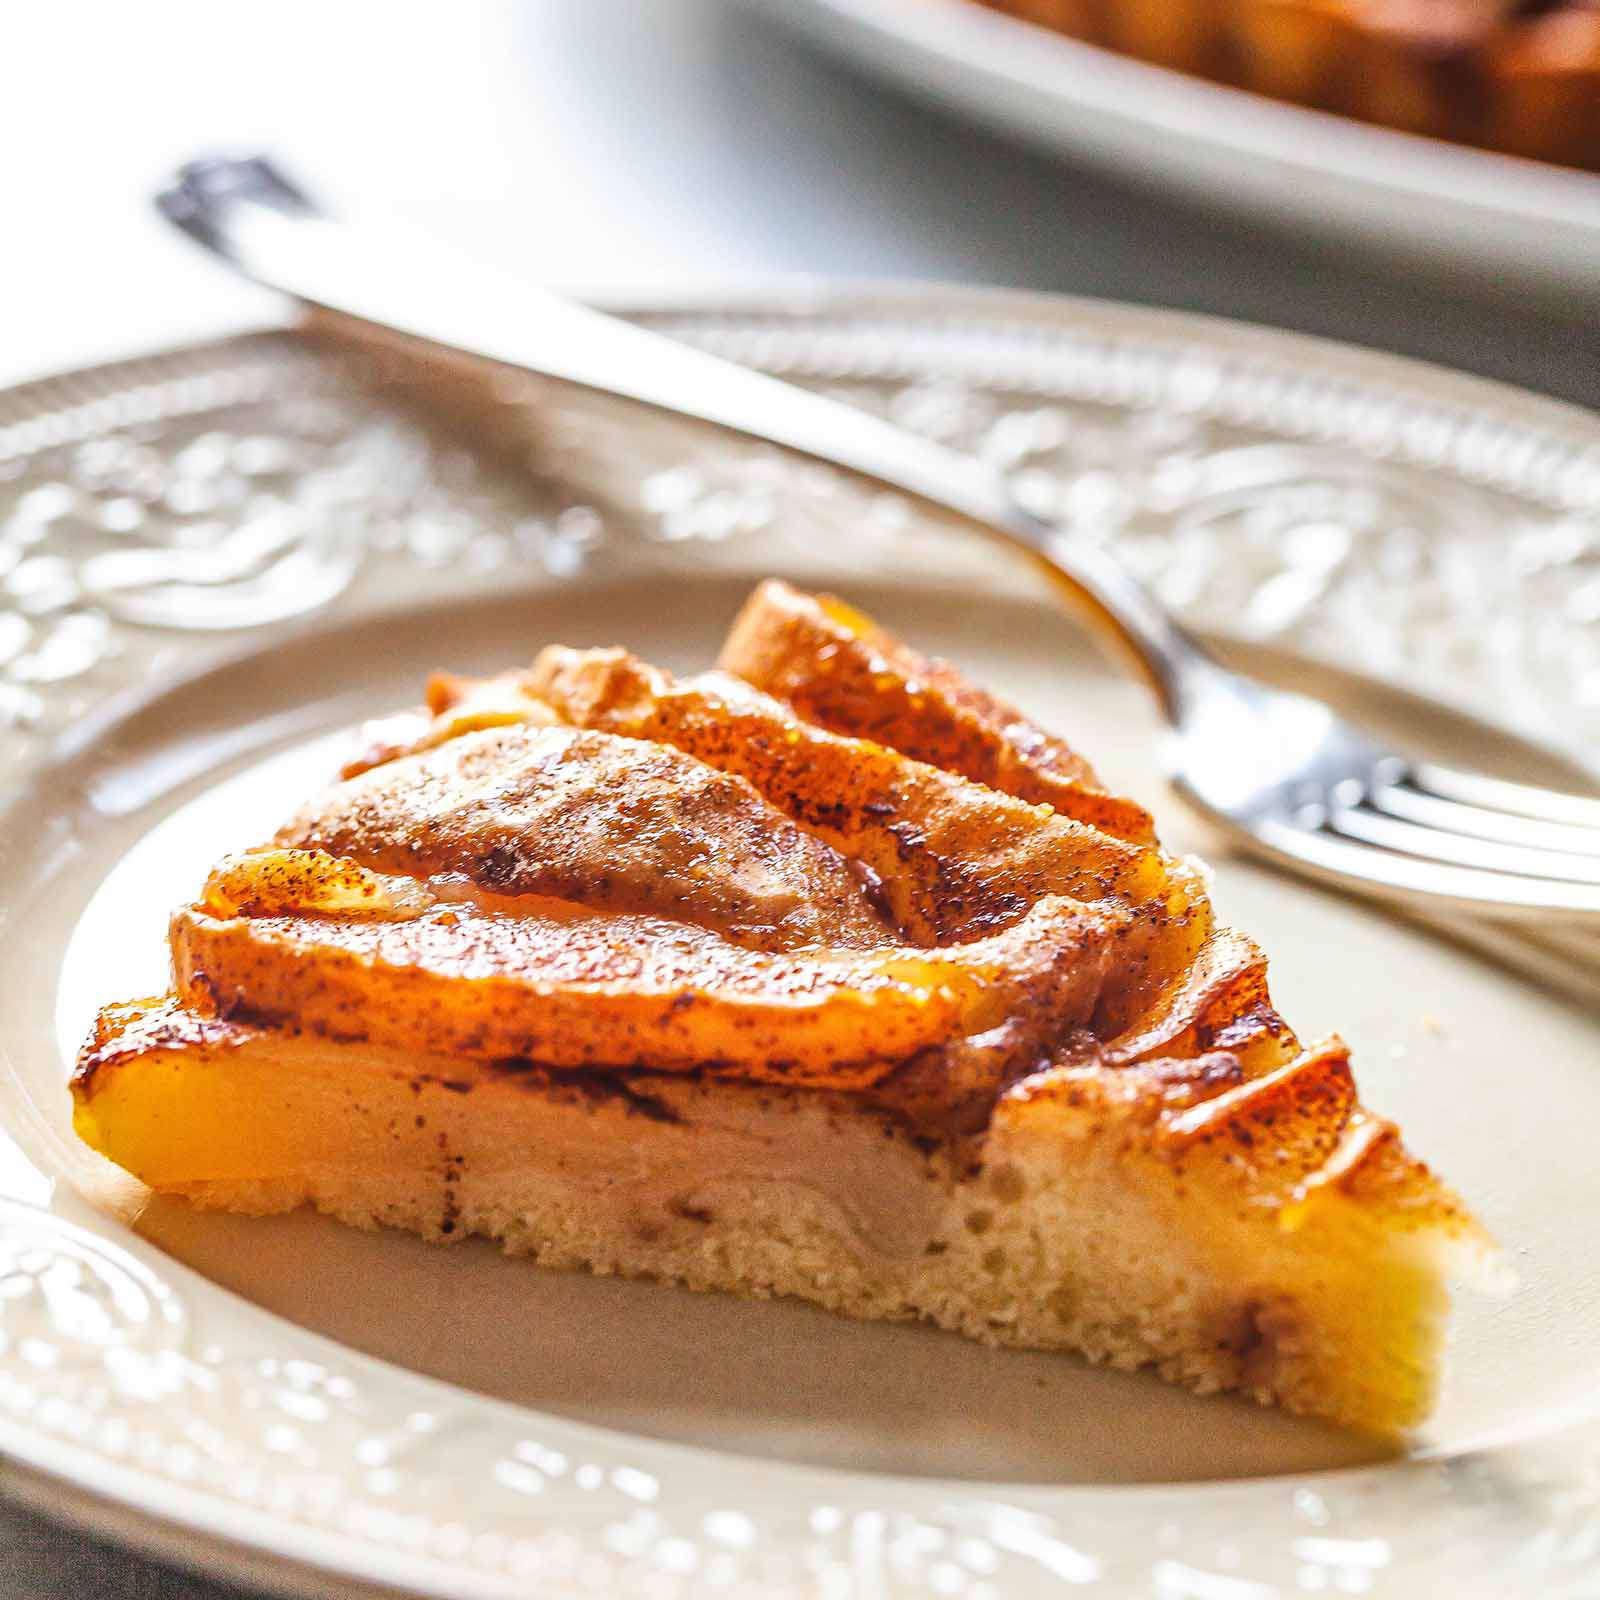 Slice of homemade pear cake on a plate with a fork.